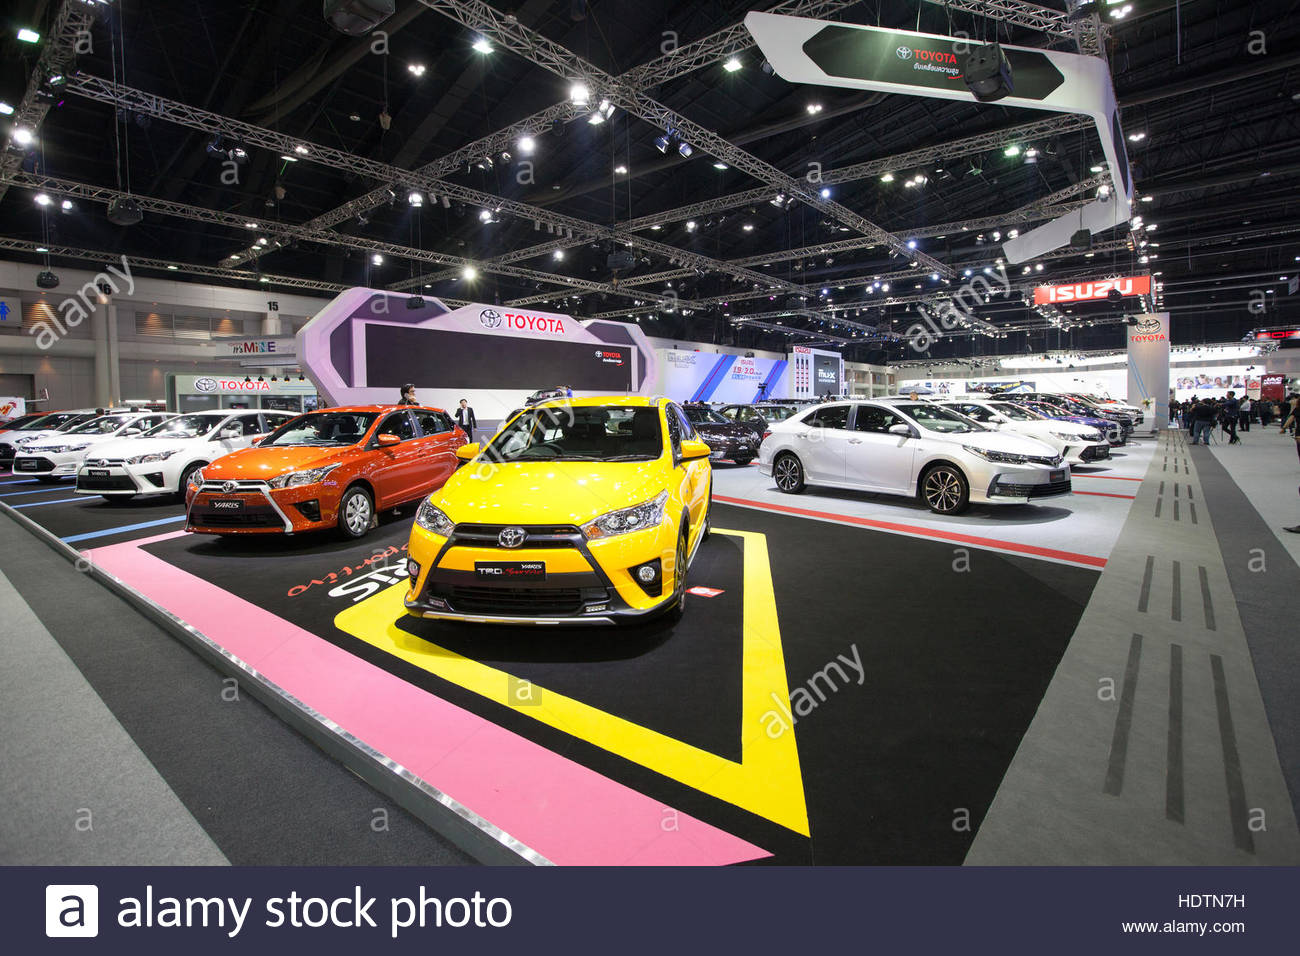 new yaris trd modifikasi all sportivo bangkok november 30 toyota car on display at motor expo 2016 in thailand